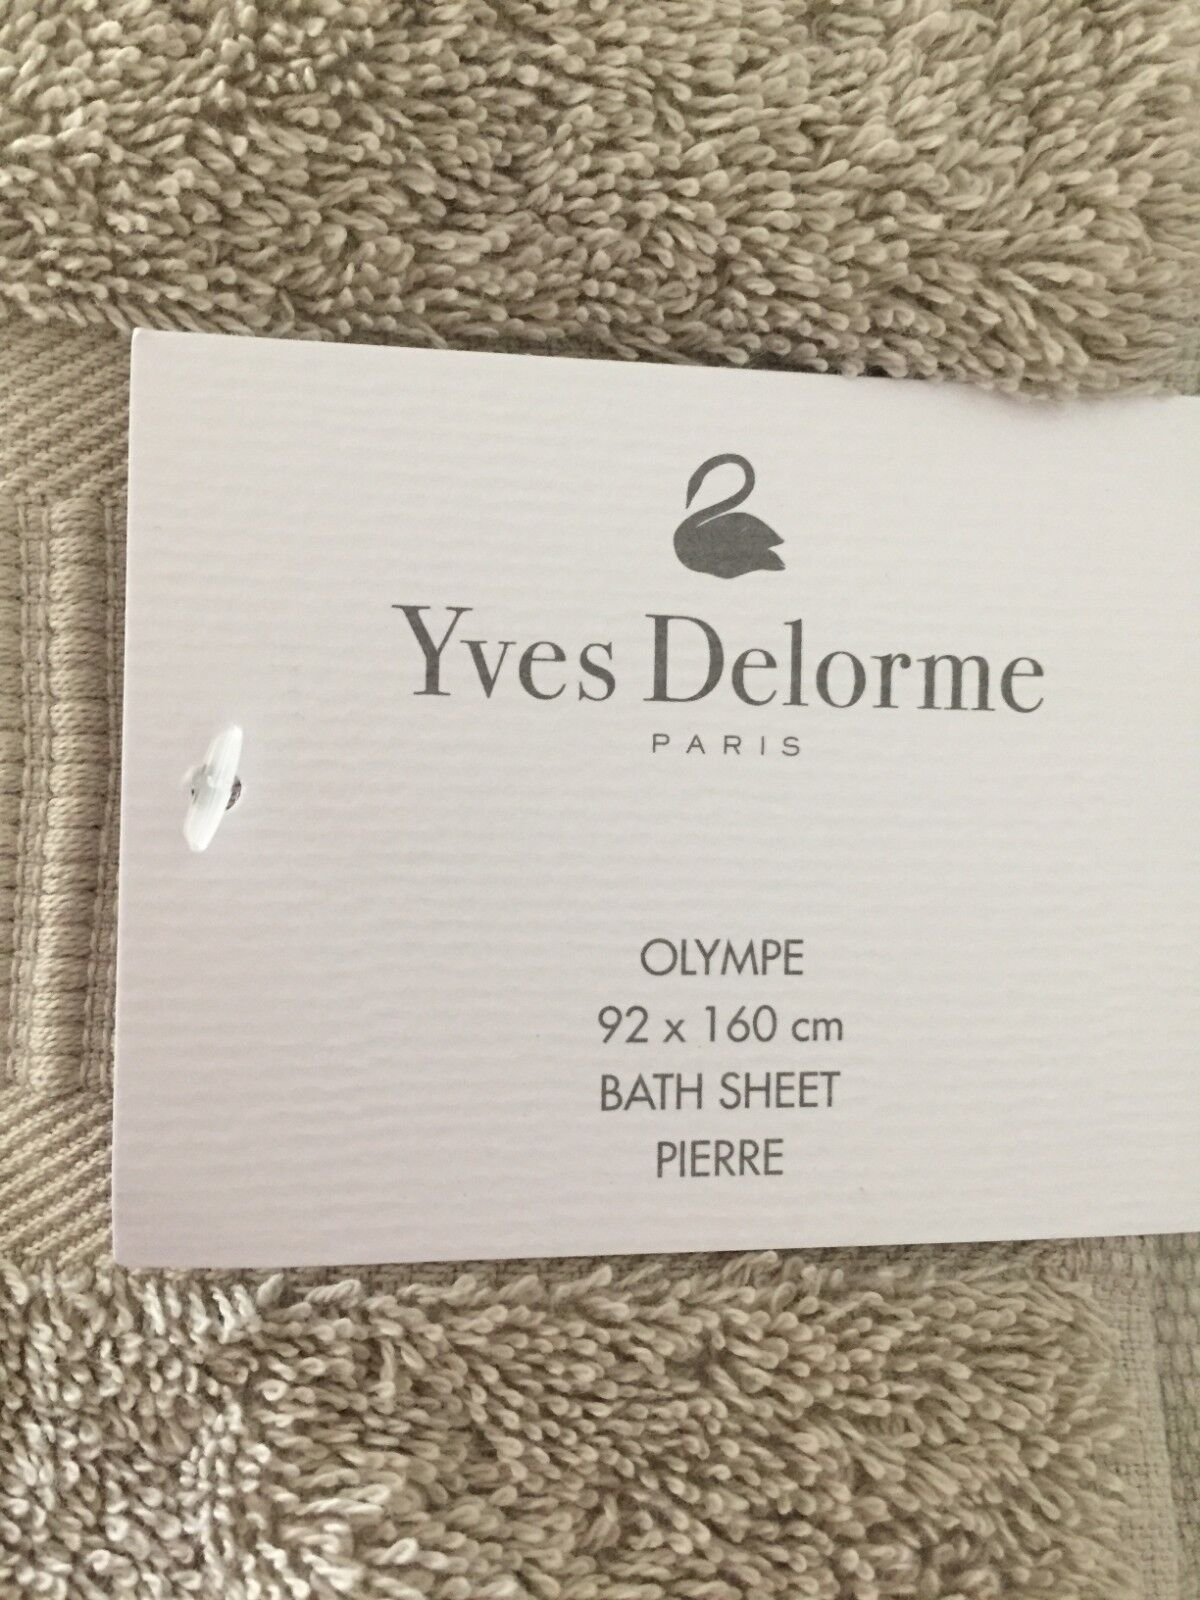 One Yves DeLorme OLYMPE PIERRE Bath Sheet Brand Brand New 3